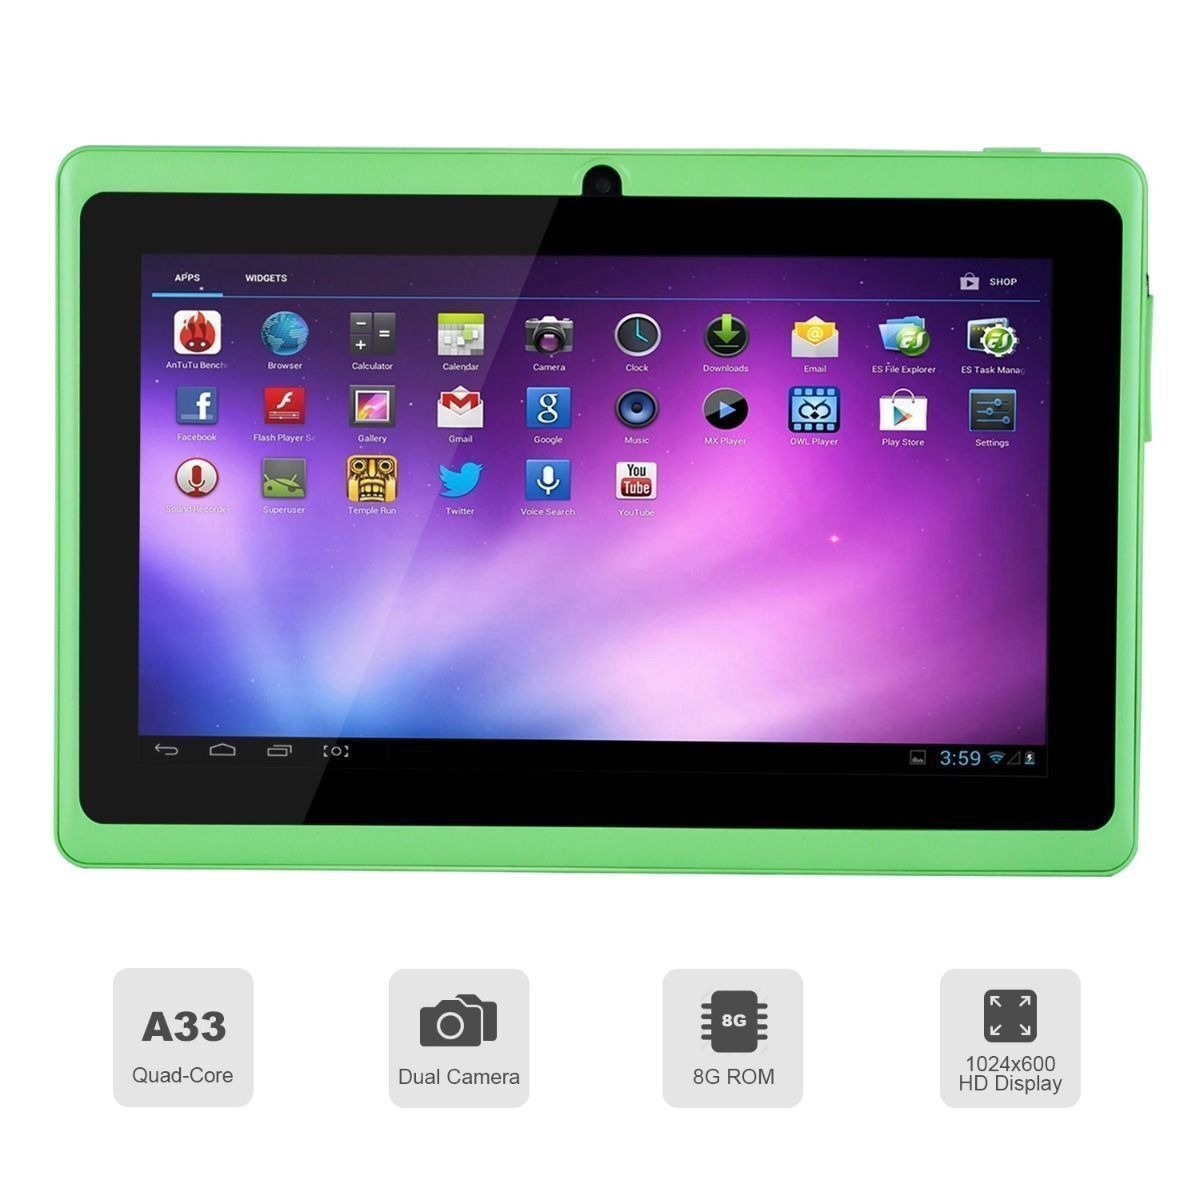 Tablet Pc 7 Quot Tablet Pc Quad Core Google Android 4 4 Kitkat 8gb Wifi